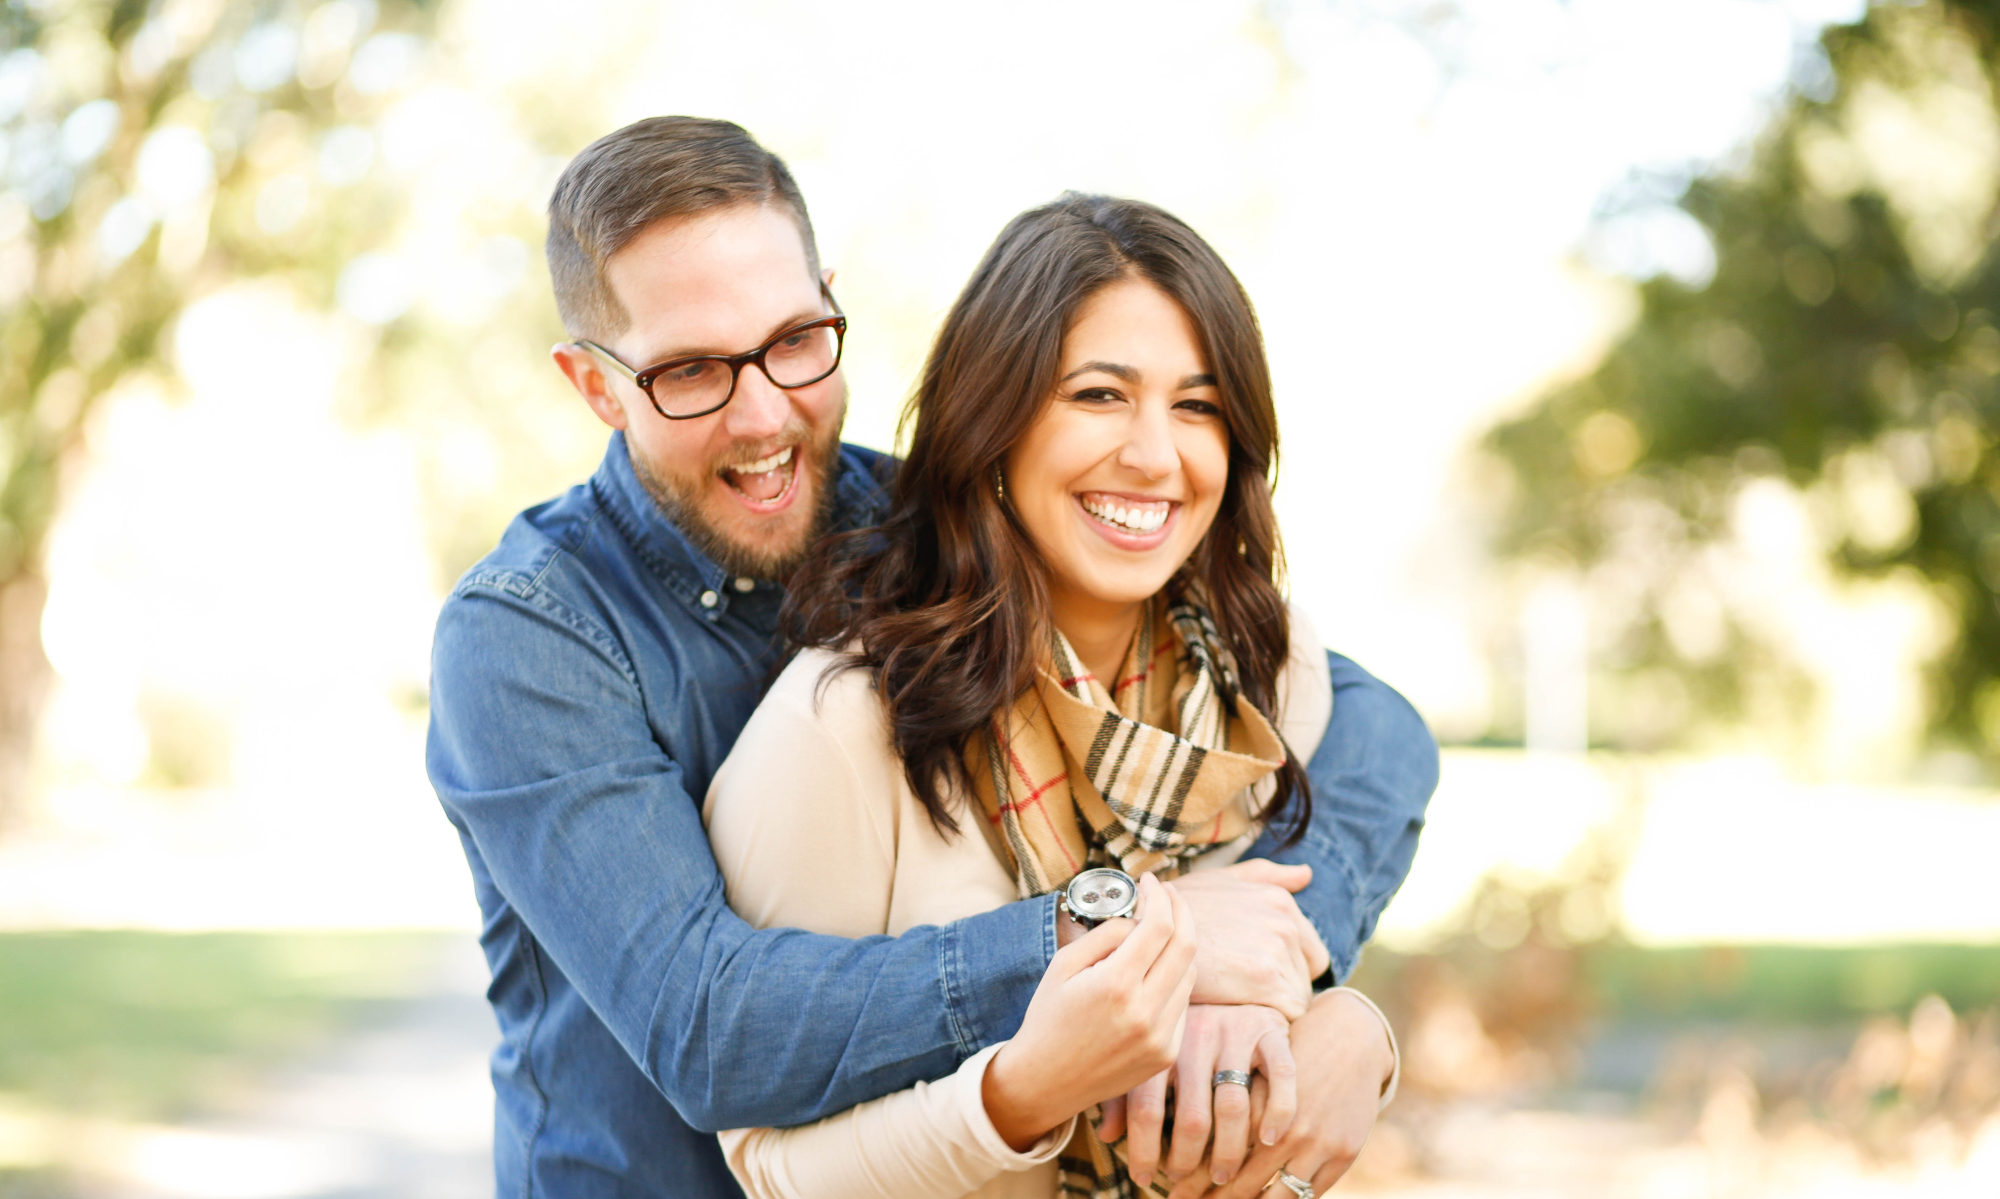 Couples therapy for unmarried couples